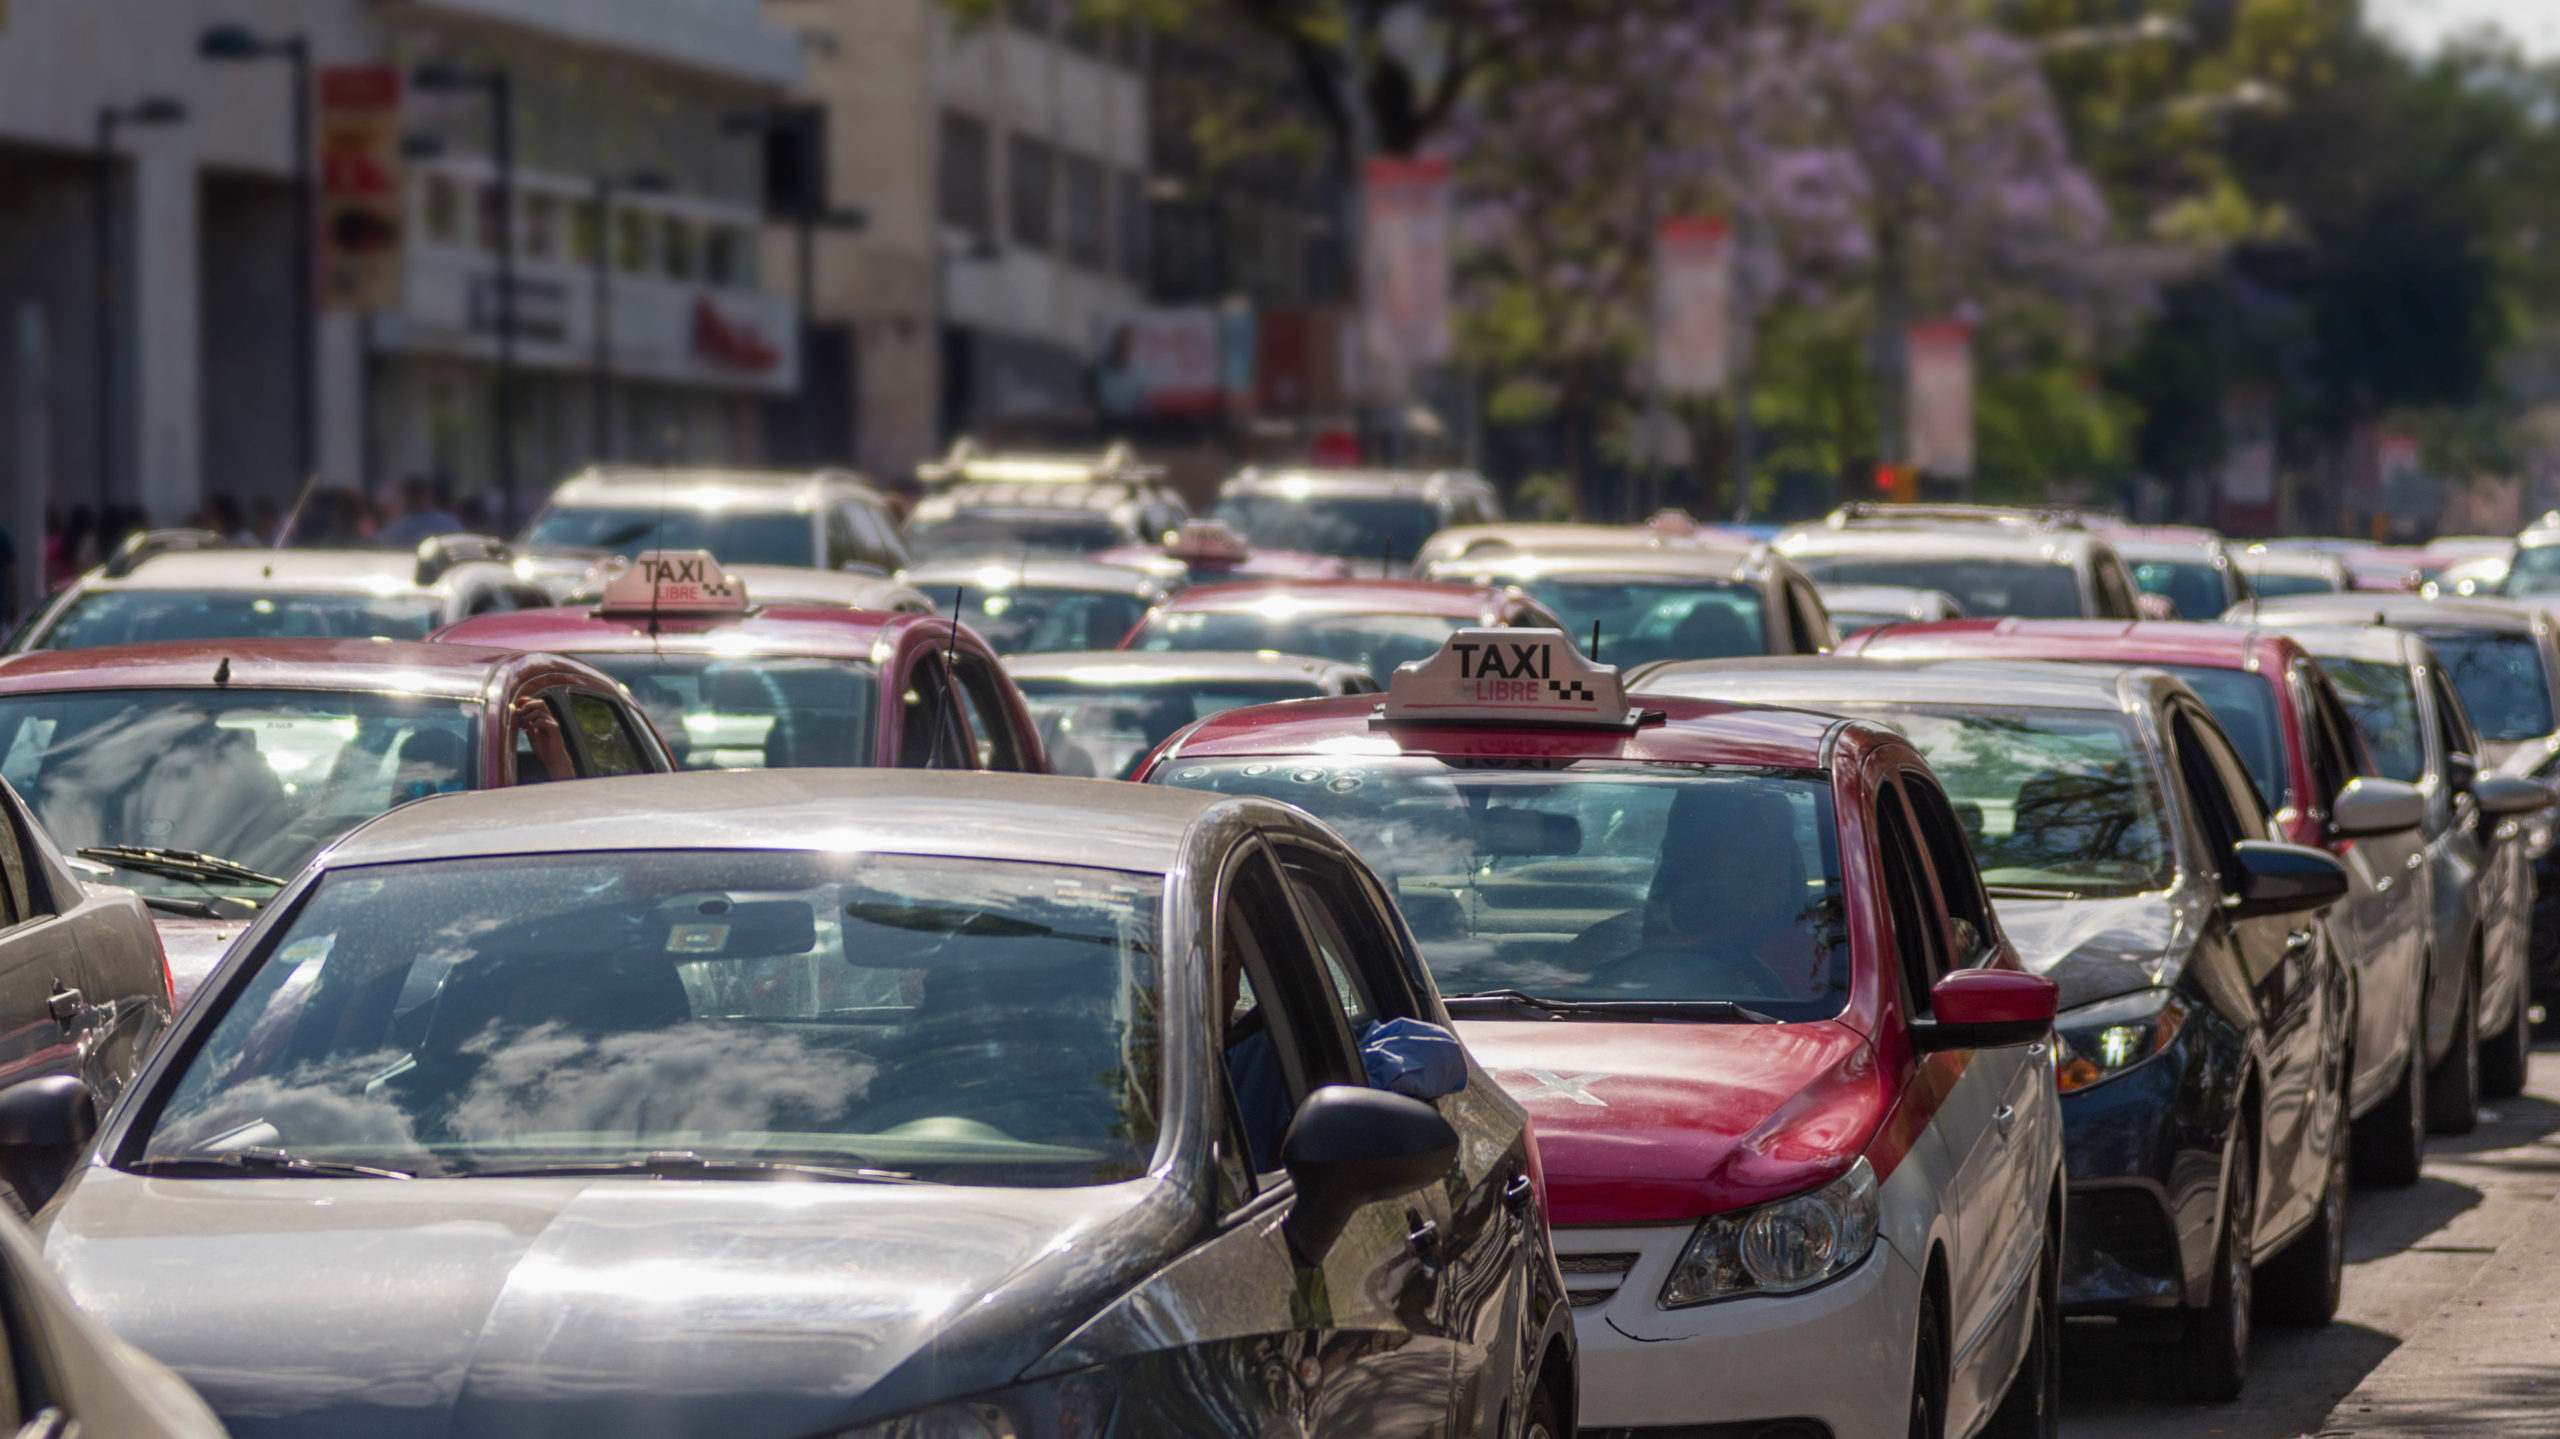 taxis in traffic - Mexico City